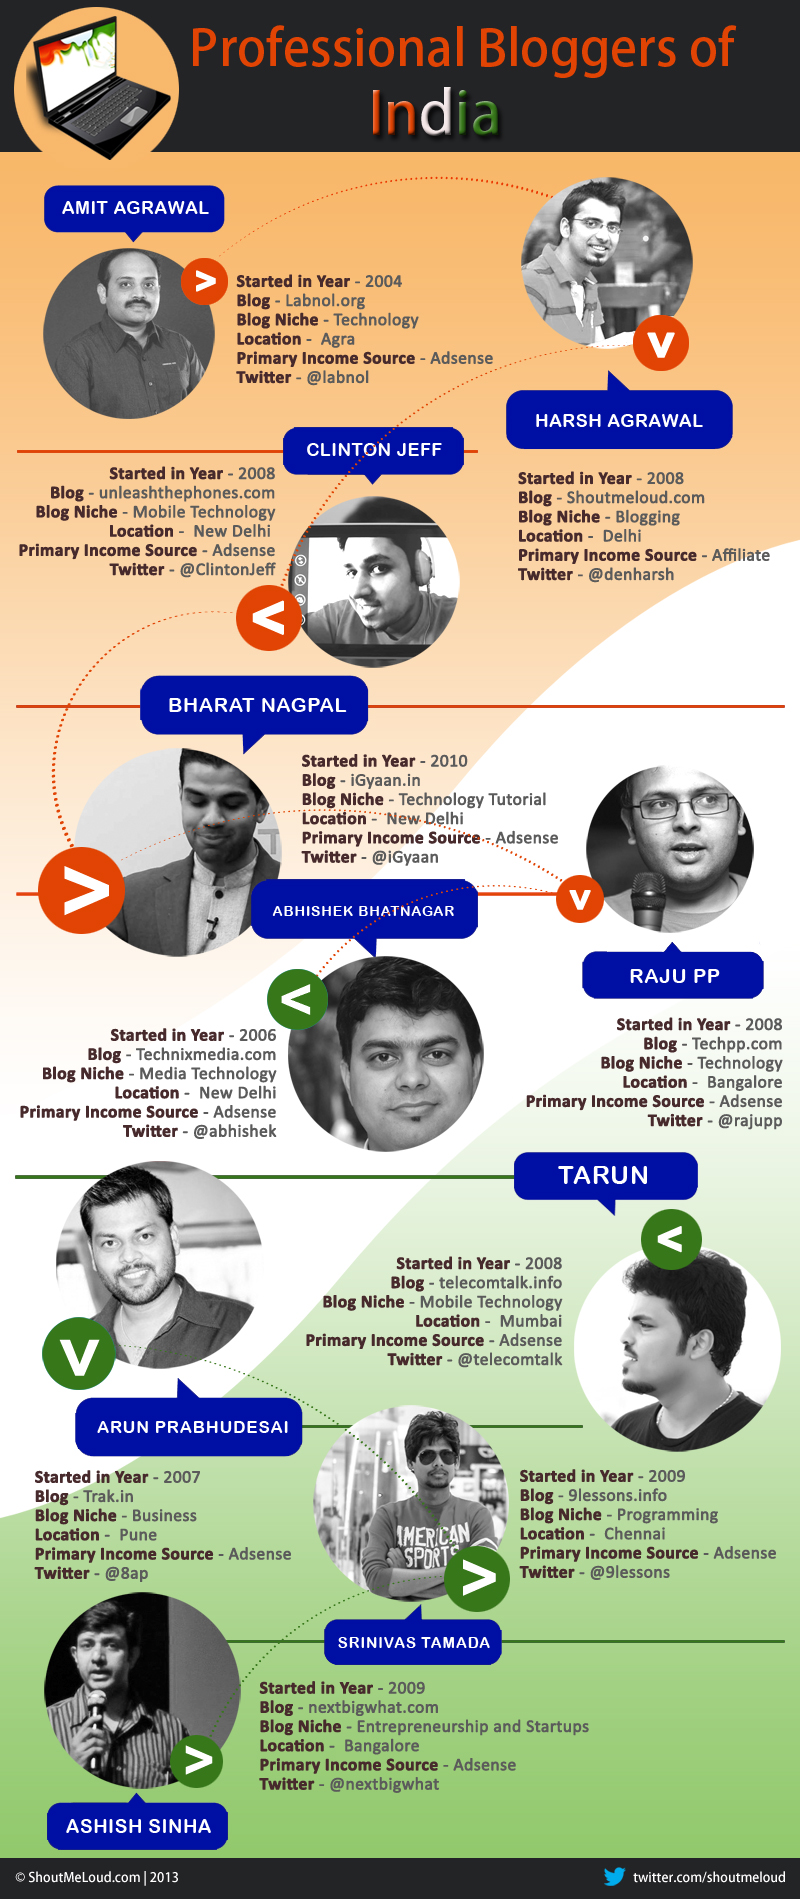 Indian Pro Bloggers PartI Indian Professional Bloggers   Gems of India [Infographic]